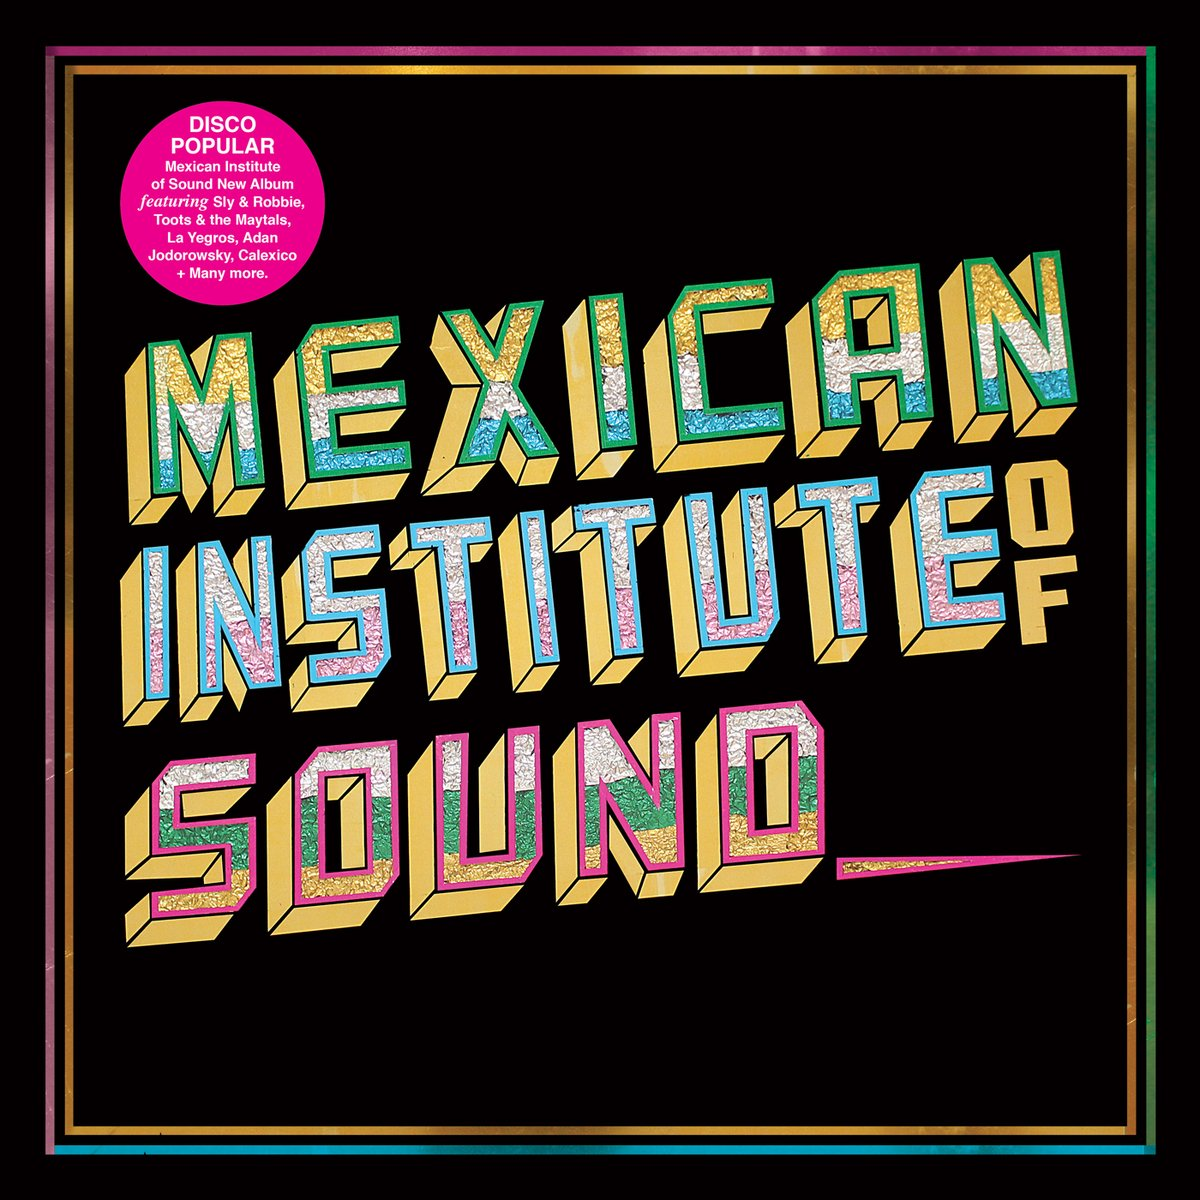 Instituto Mexicano del Sonido - Disco Popular